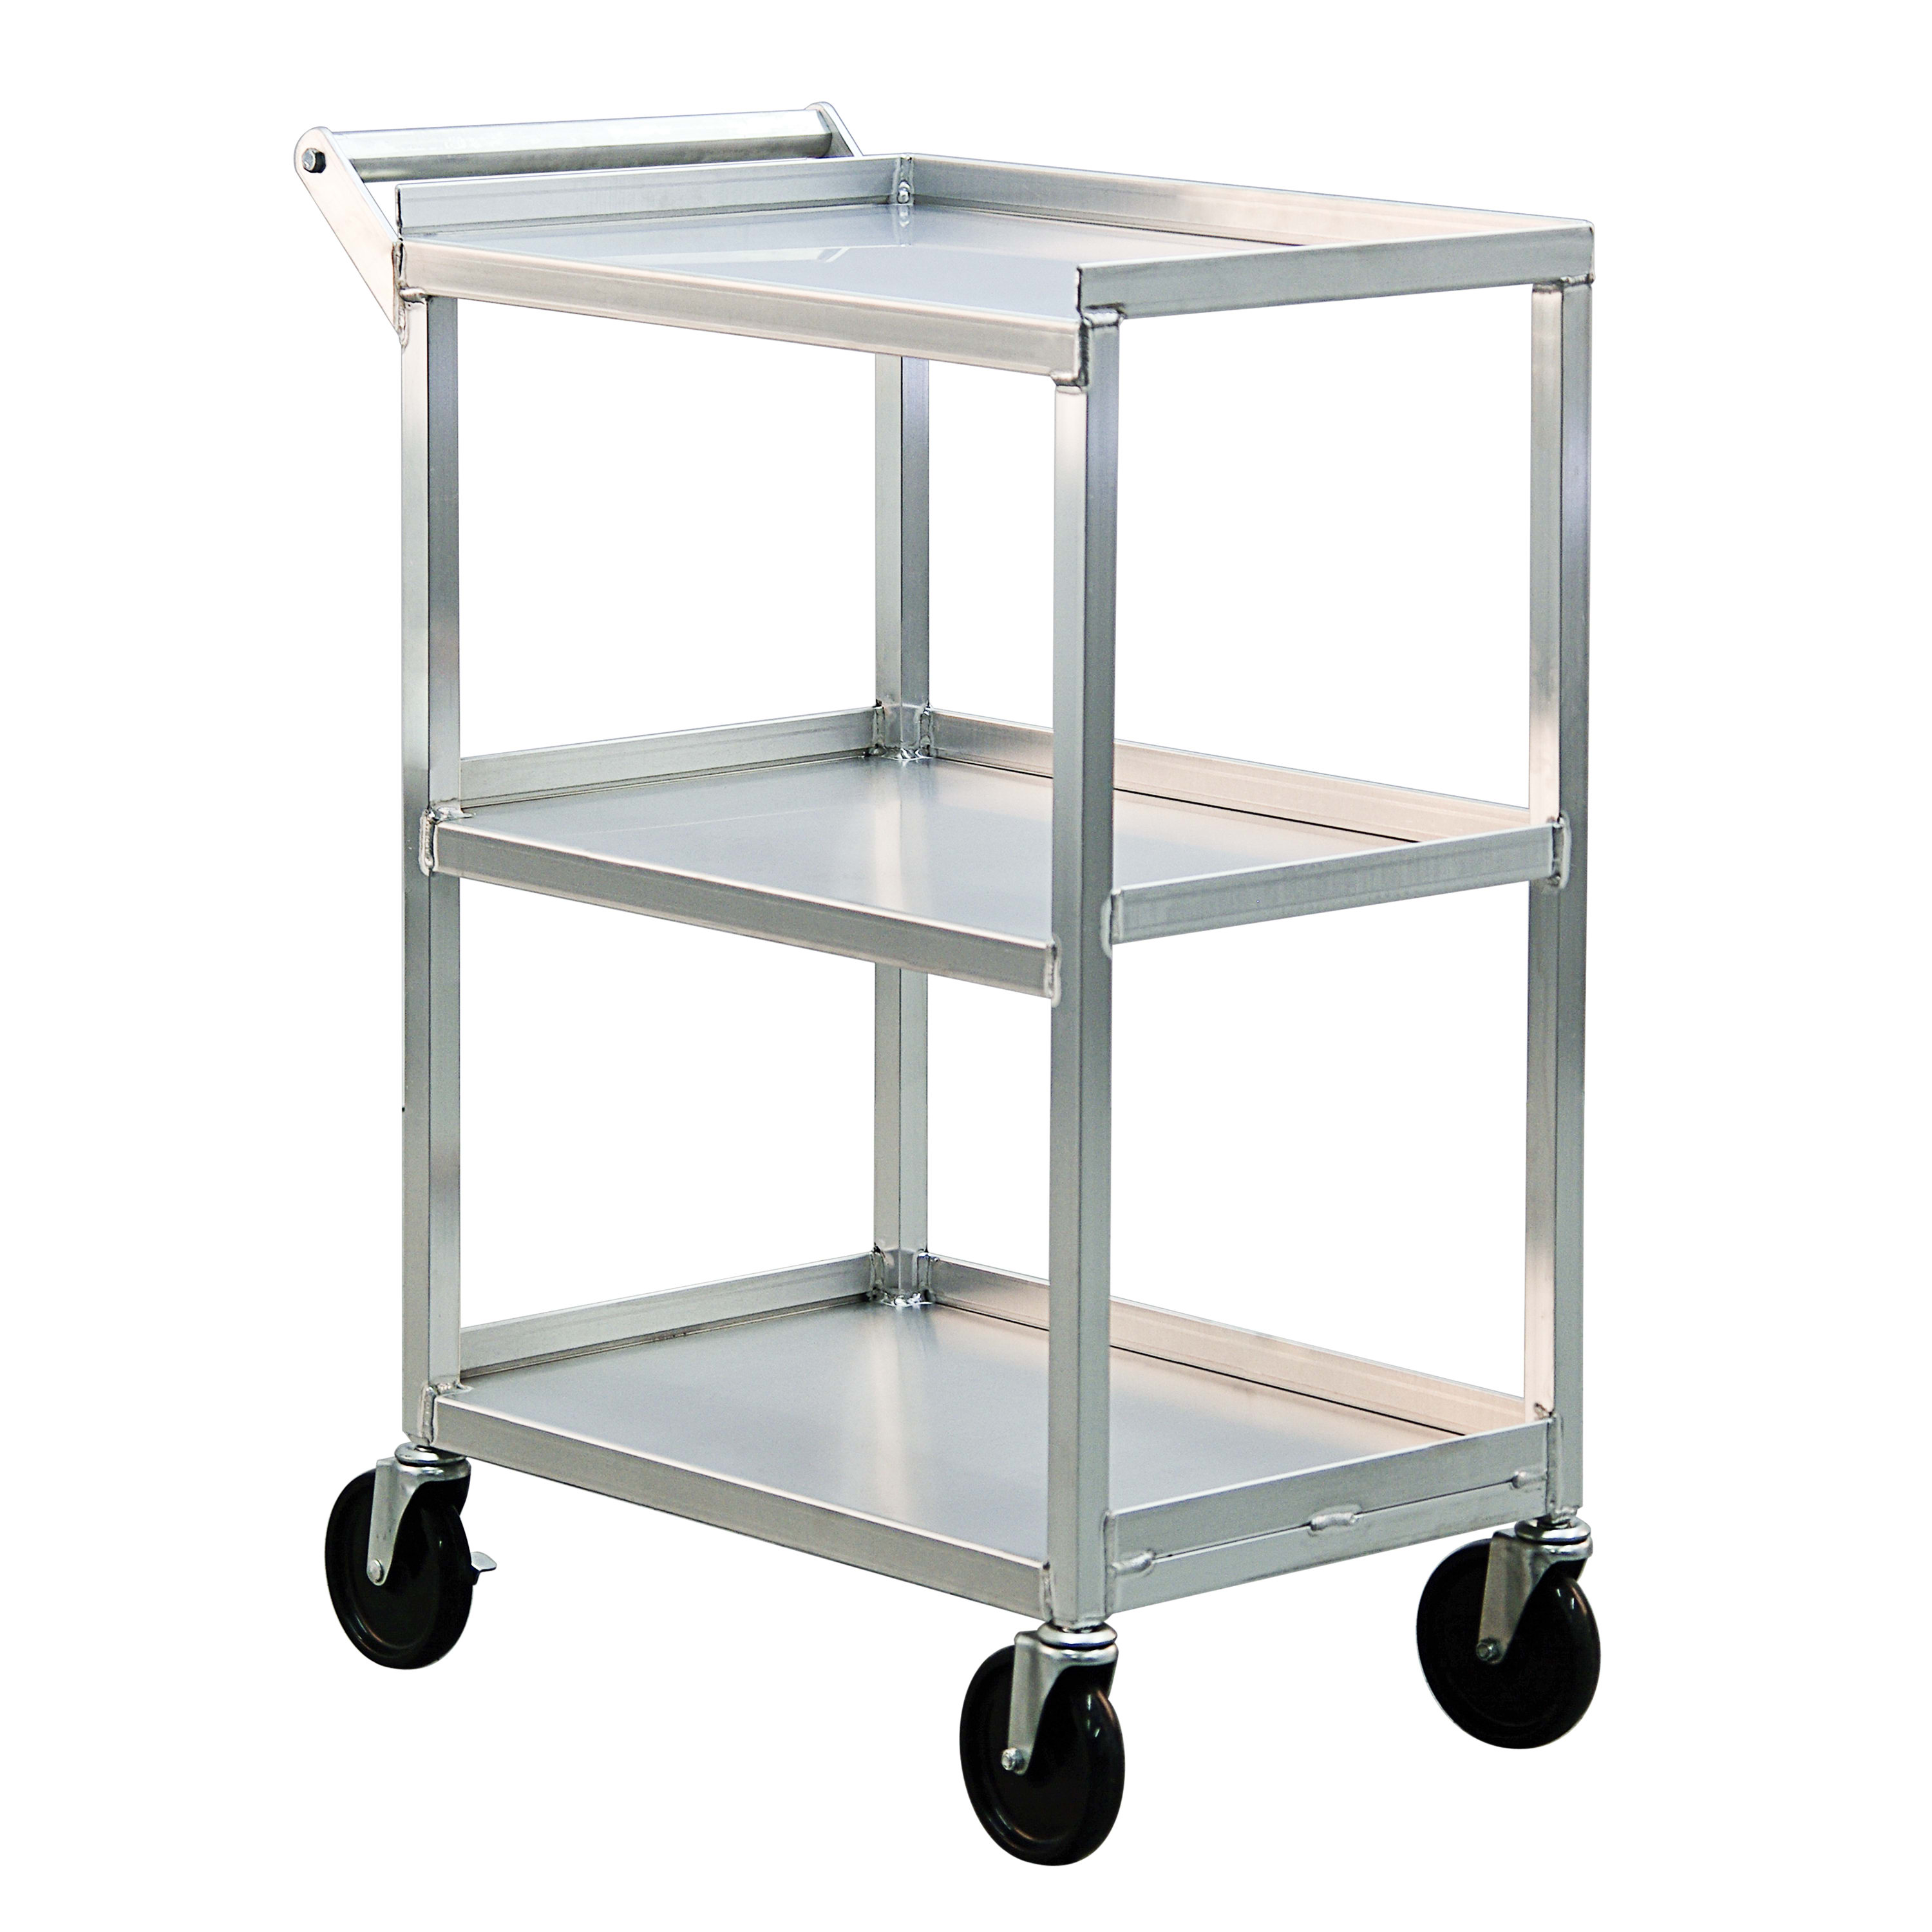 "New Age 1440 16.5x27.75"" Open Bussing Cart w/ 3-Solid Shelves & 350-lb Capacity, Aluminum"